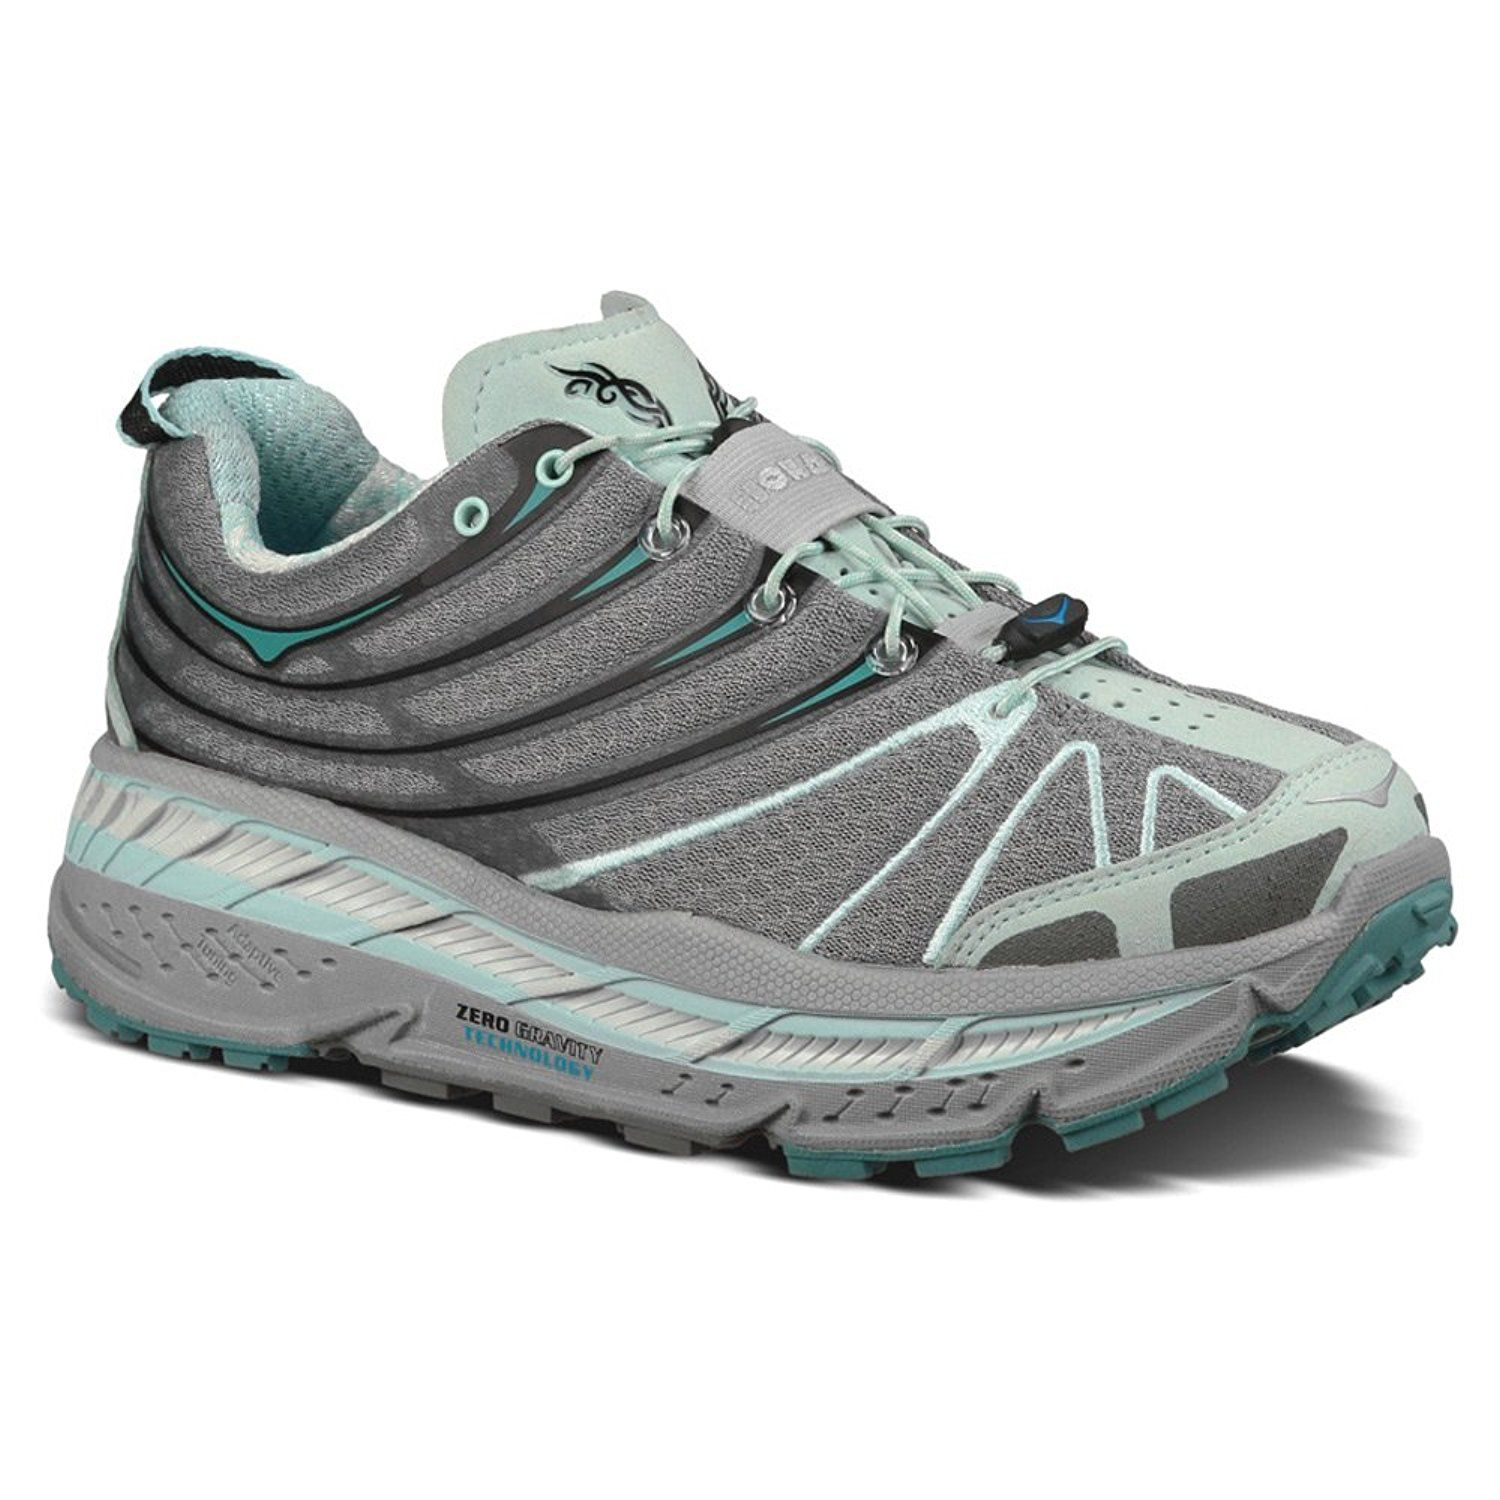 Hoka One One Women's W Stinson Trail , Light Blue/ Grey/ Grey ** Check out this great product.